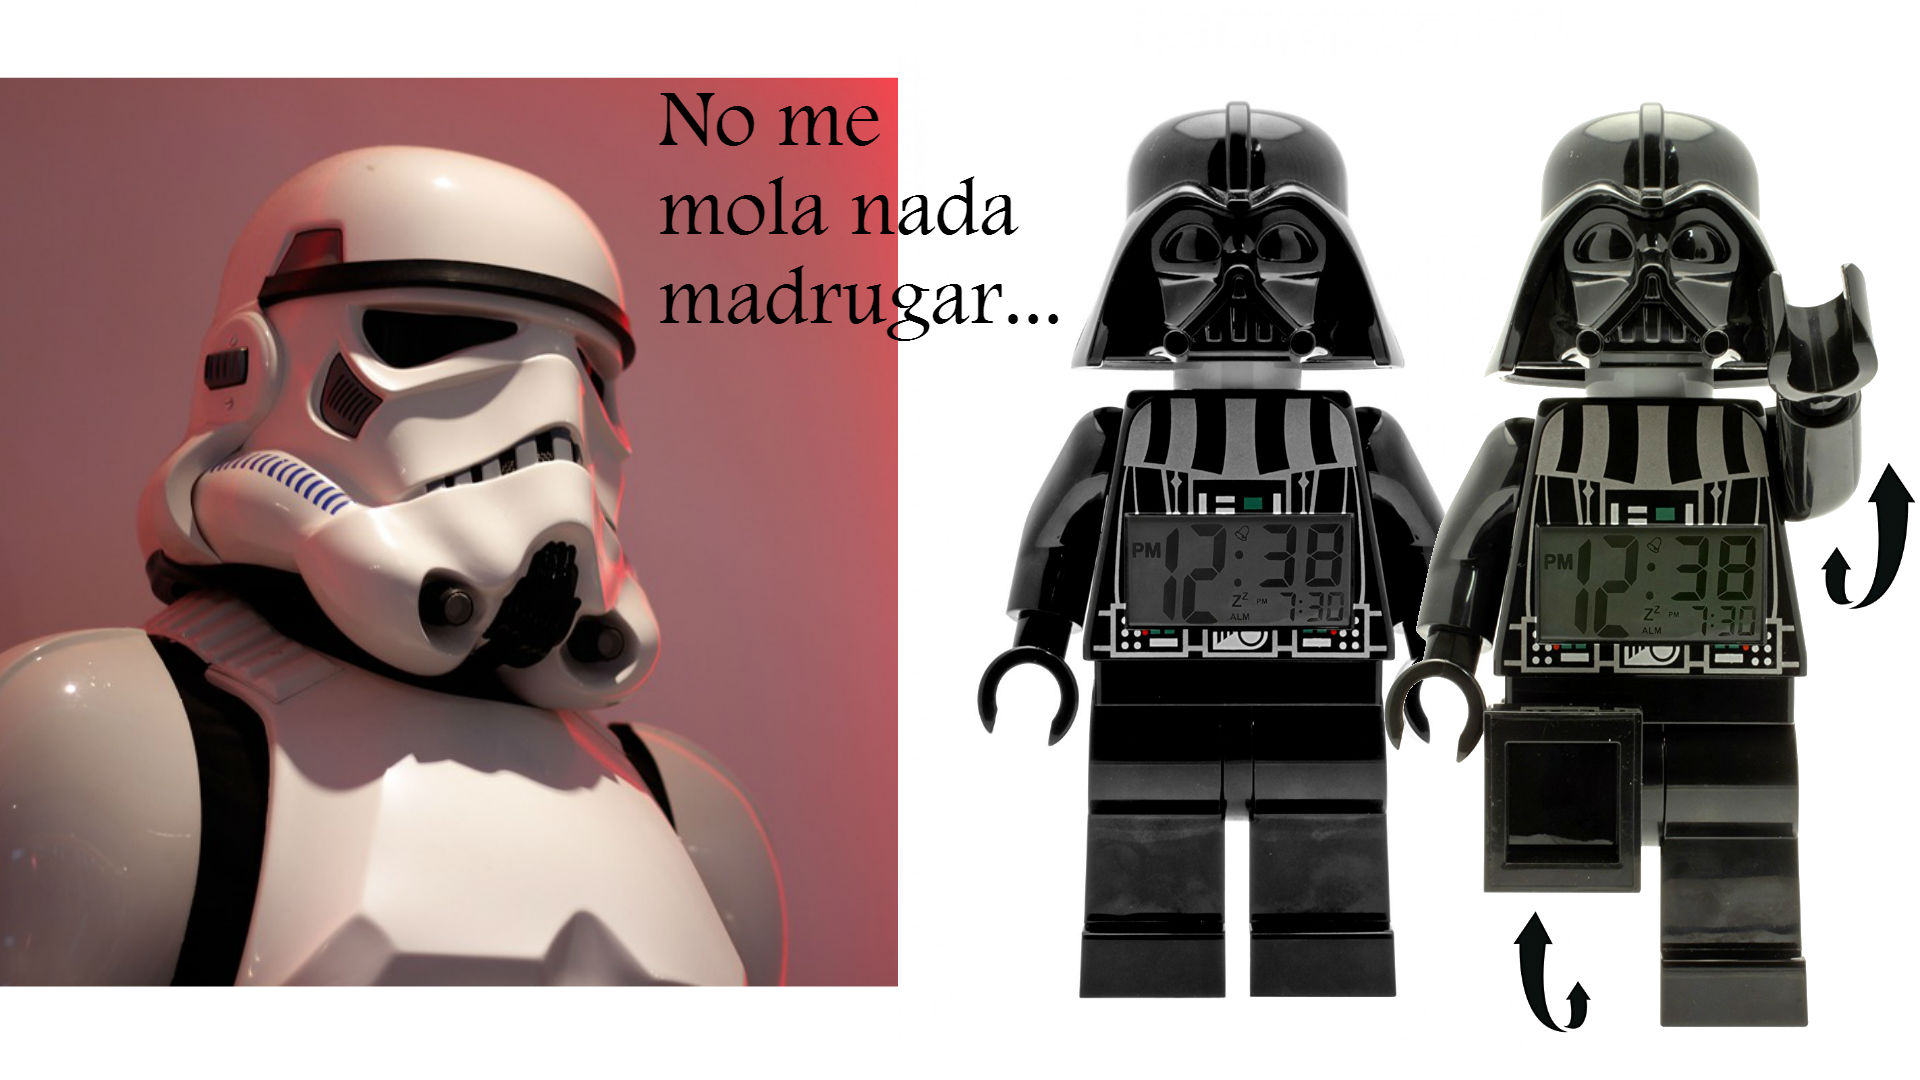 despertador_darth_vader_final.jpg